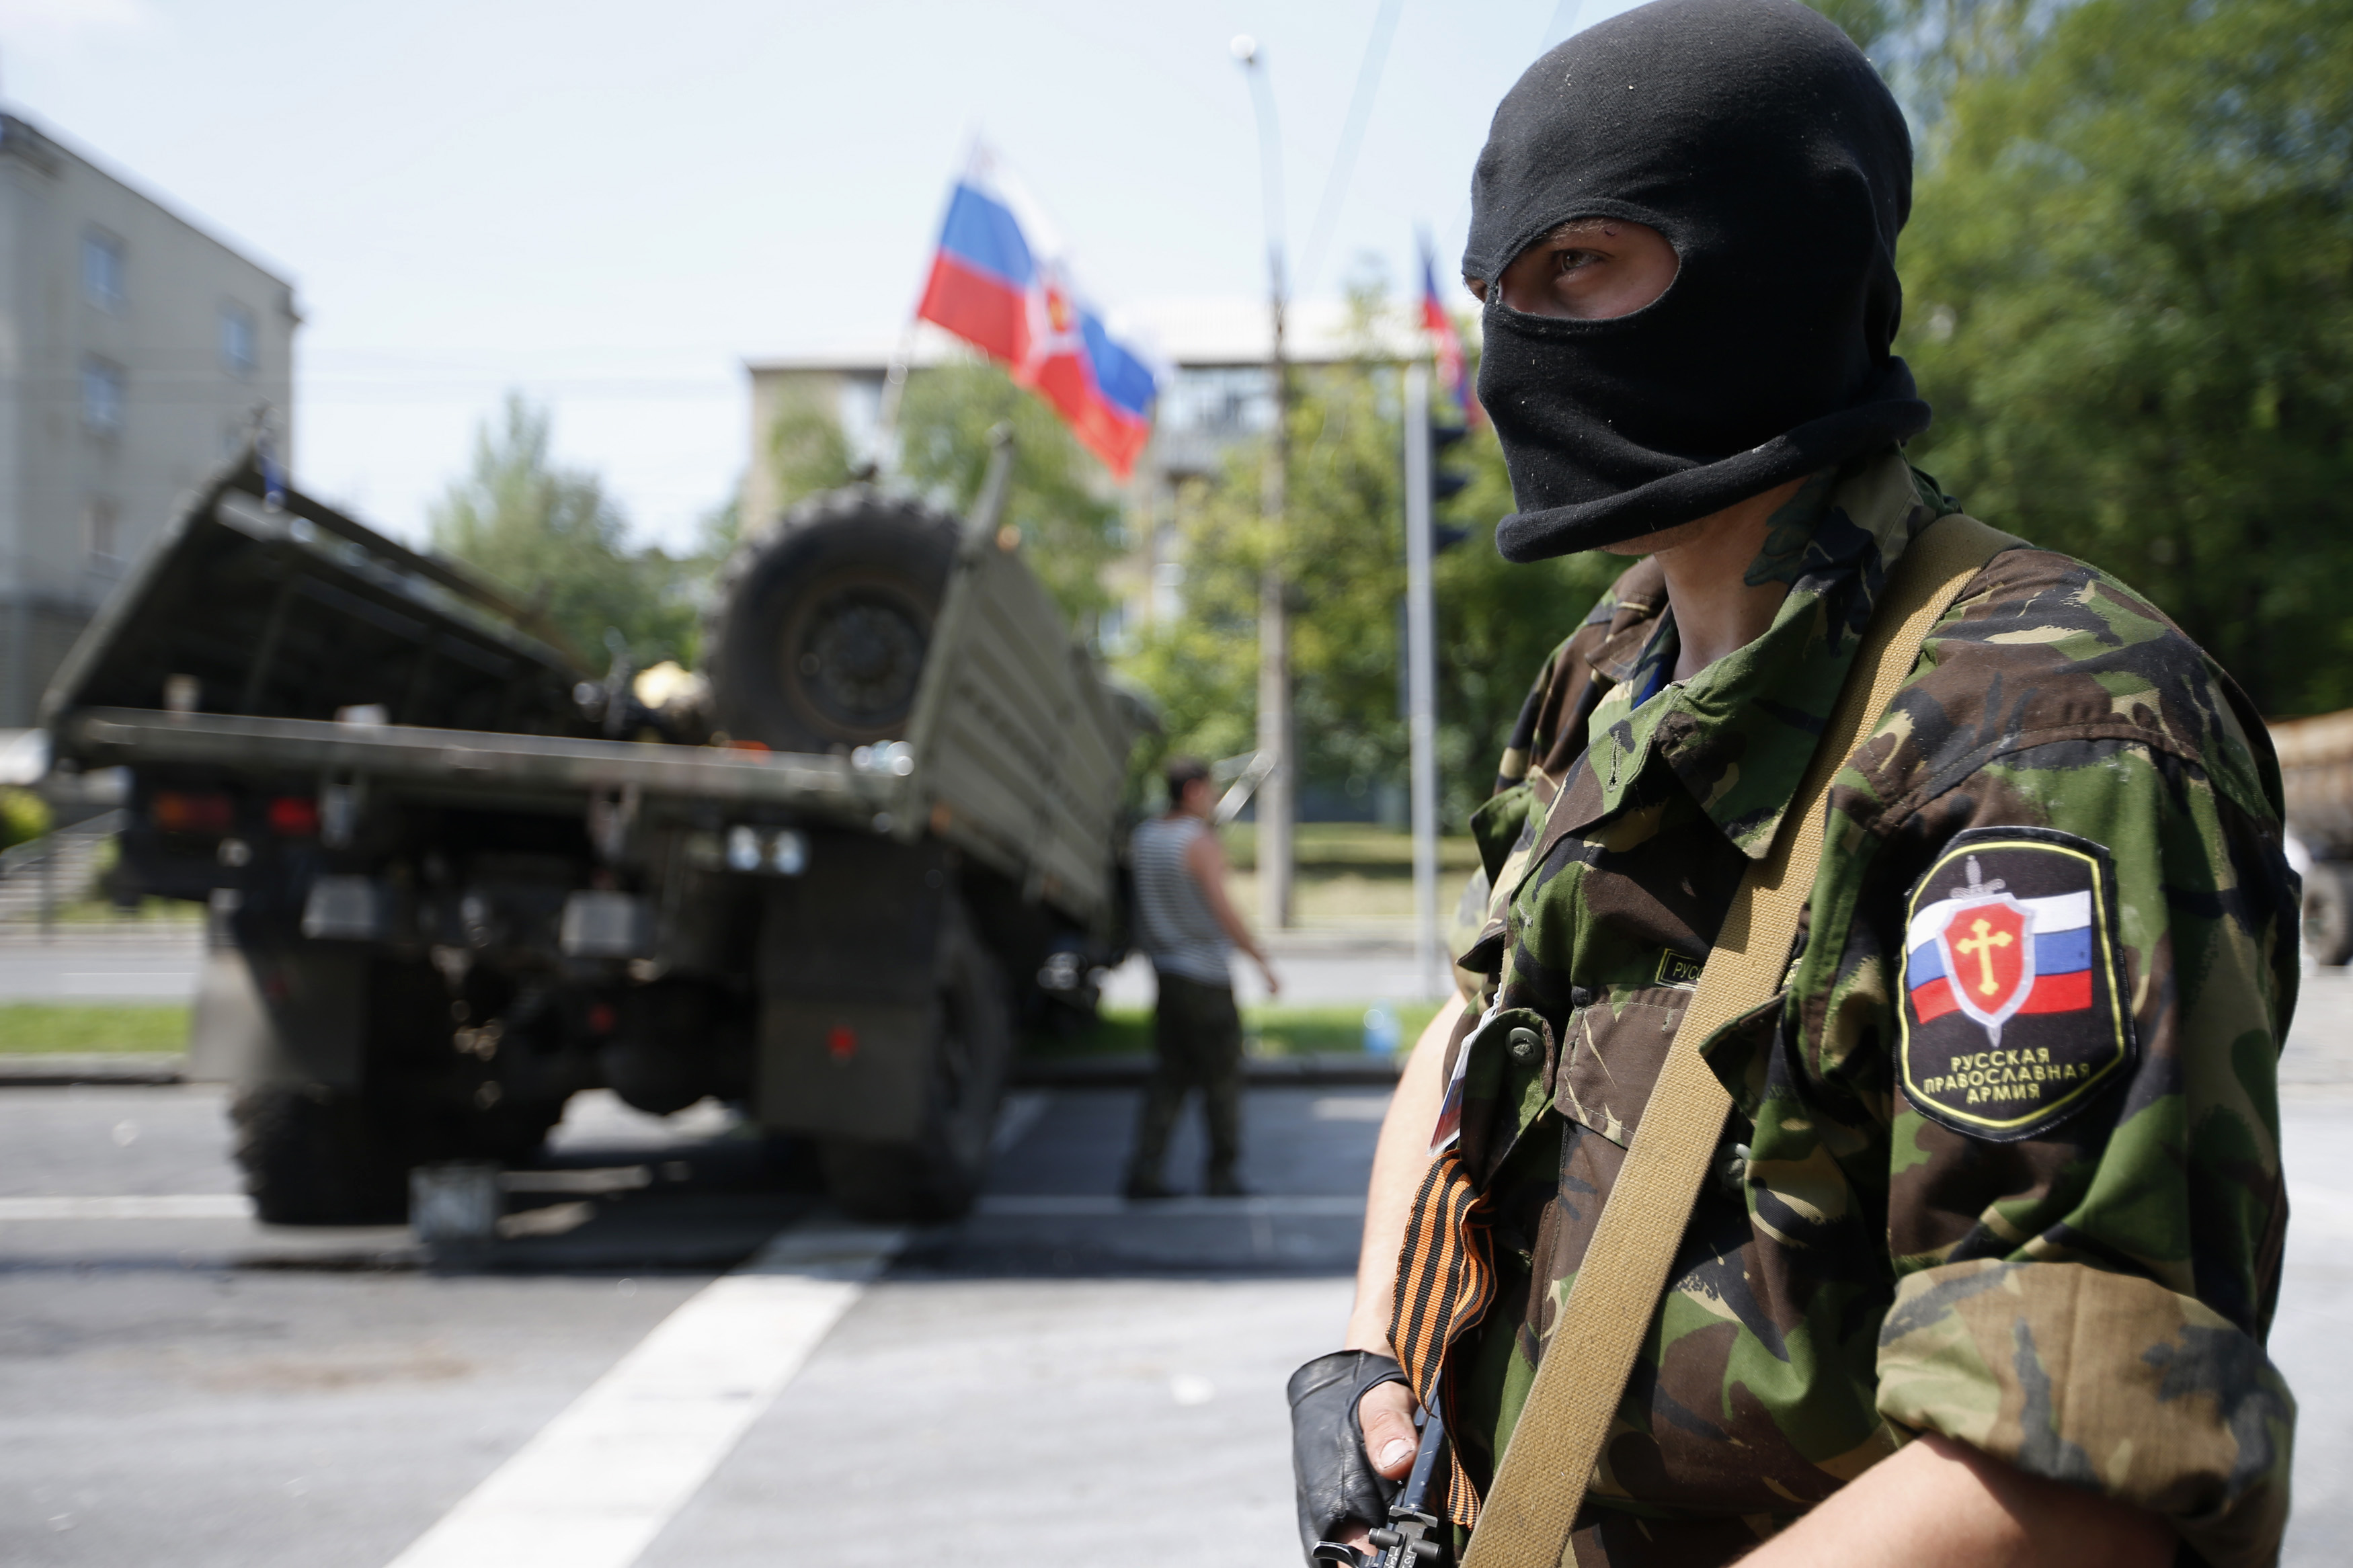 A member of a newly-formed pro-Russian armed group called the Russian Orthodox Army mans a barricade near Donetsk airport on May 29, 2014 in Donetsk, Ukraine.